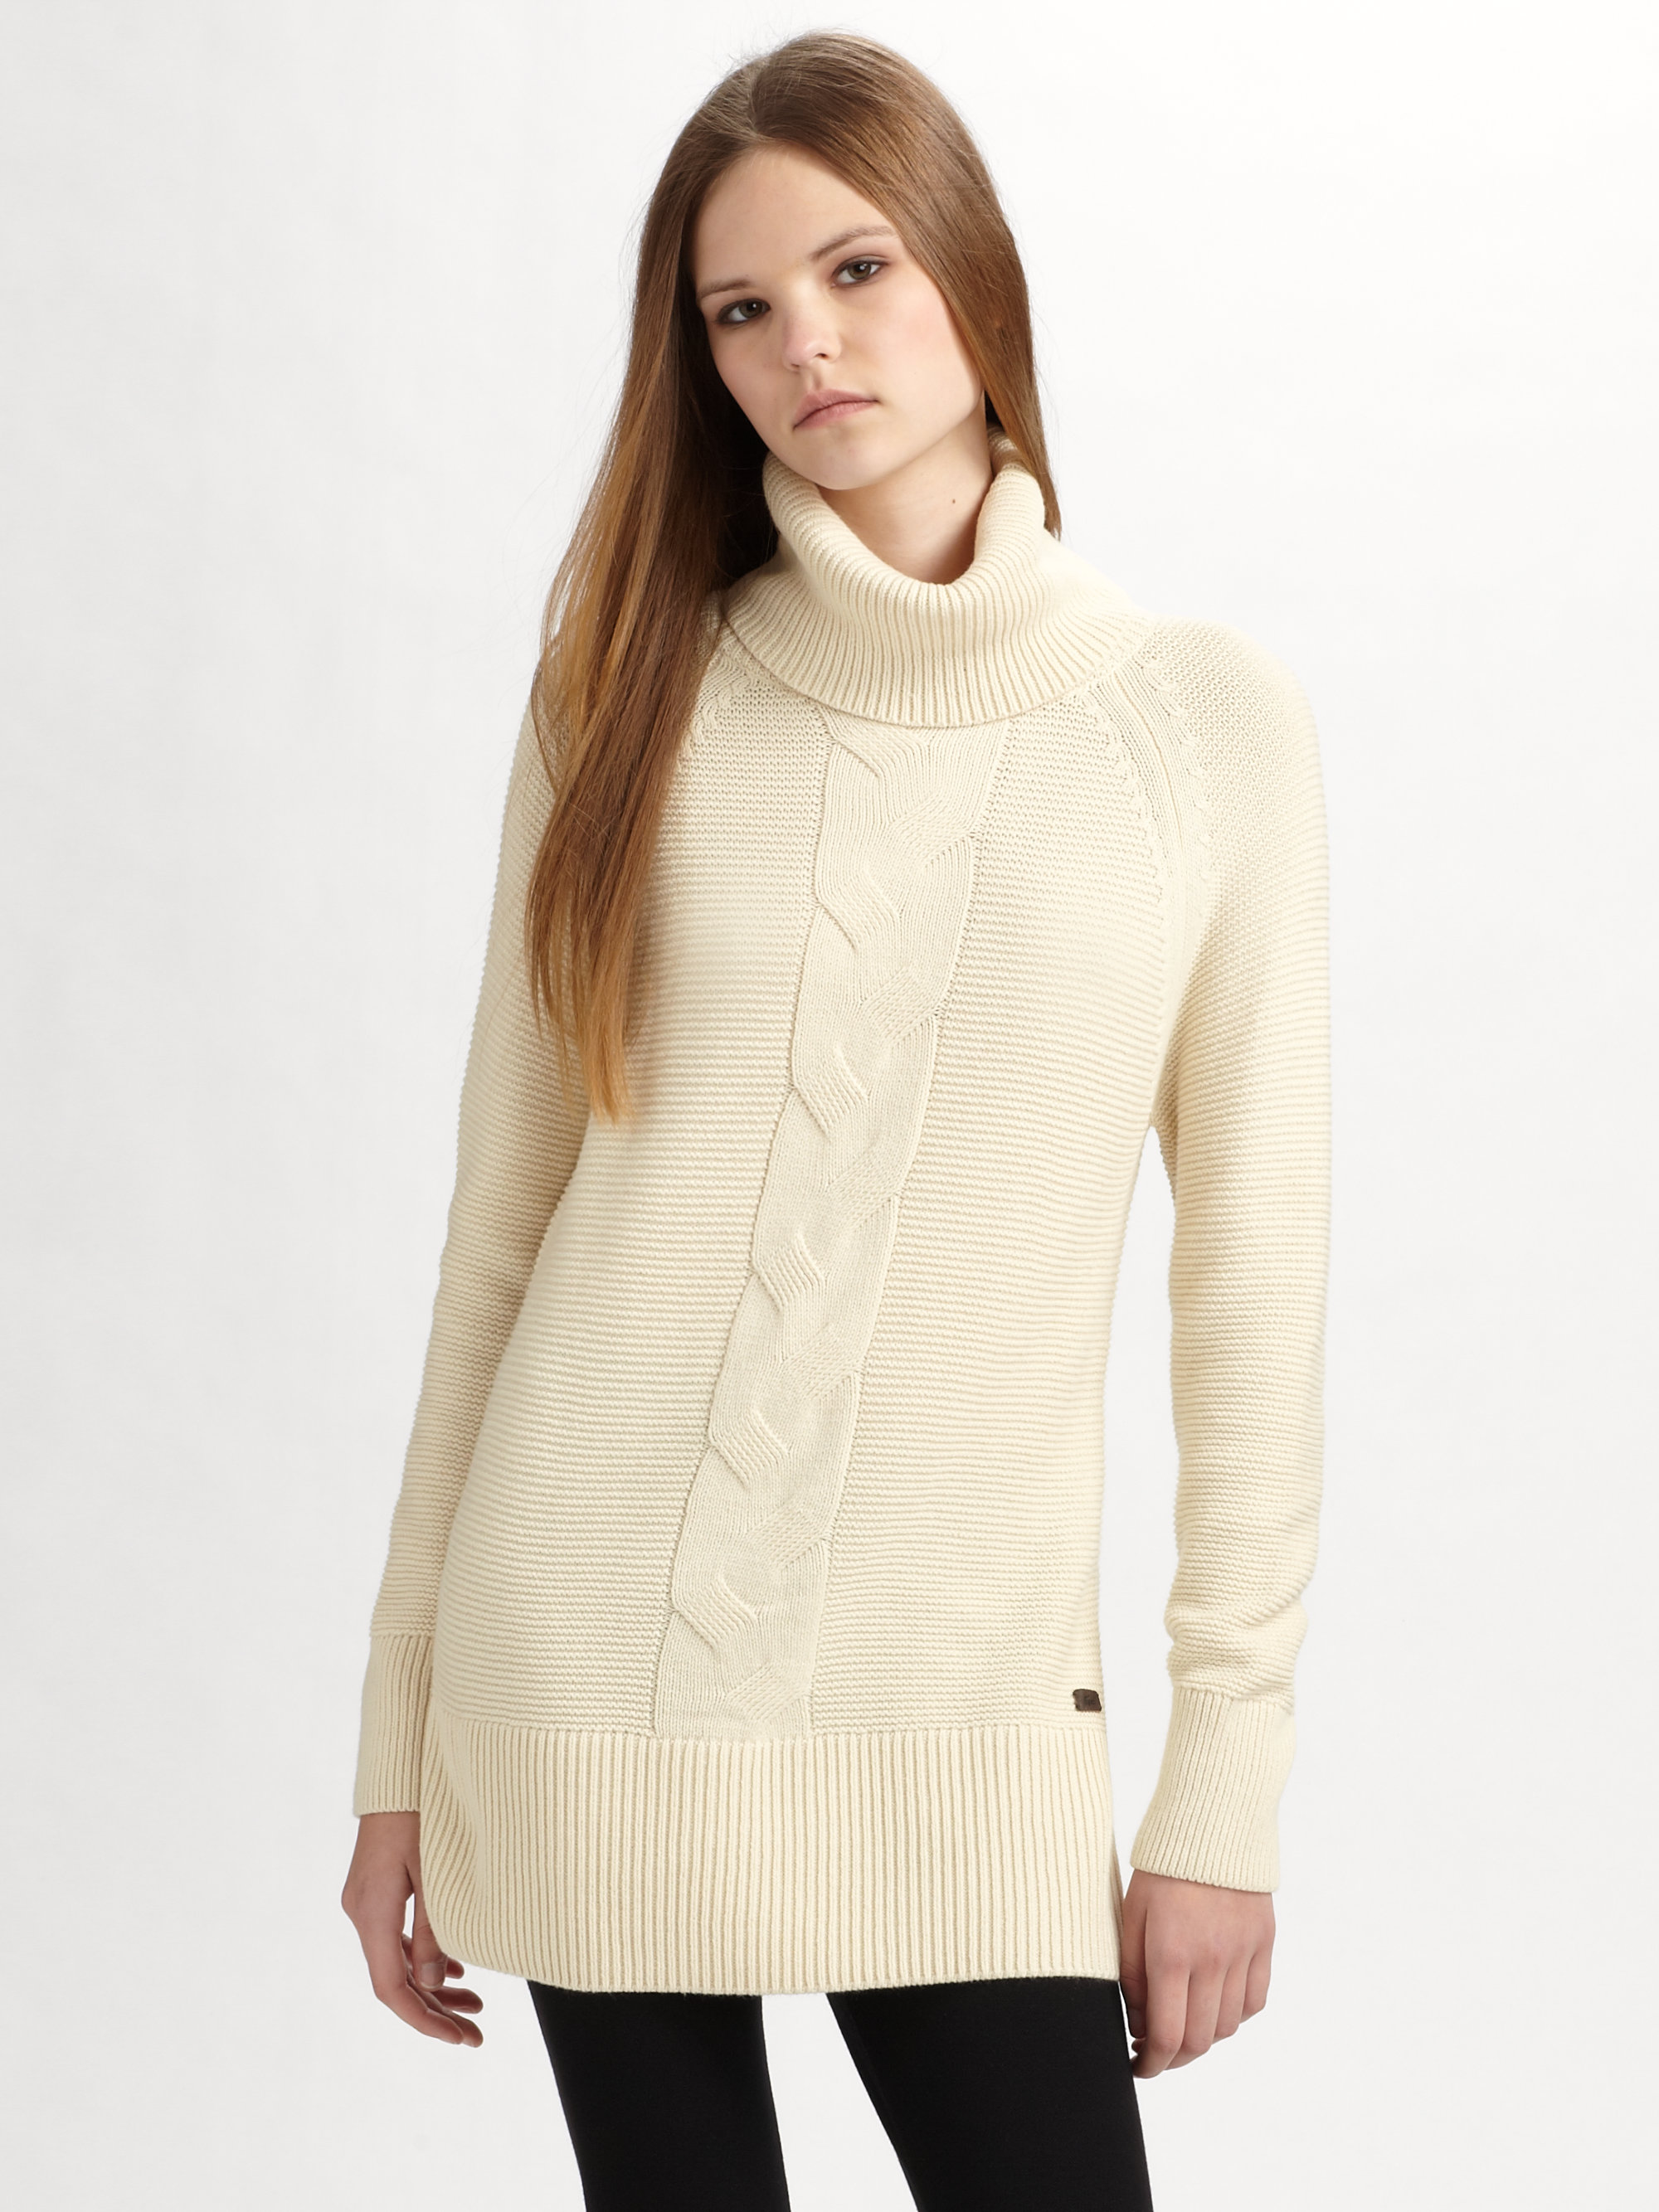 Lacoste Cable Knit Tunic Sweater in Natural Lyst